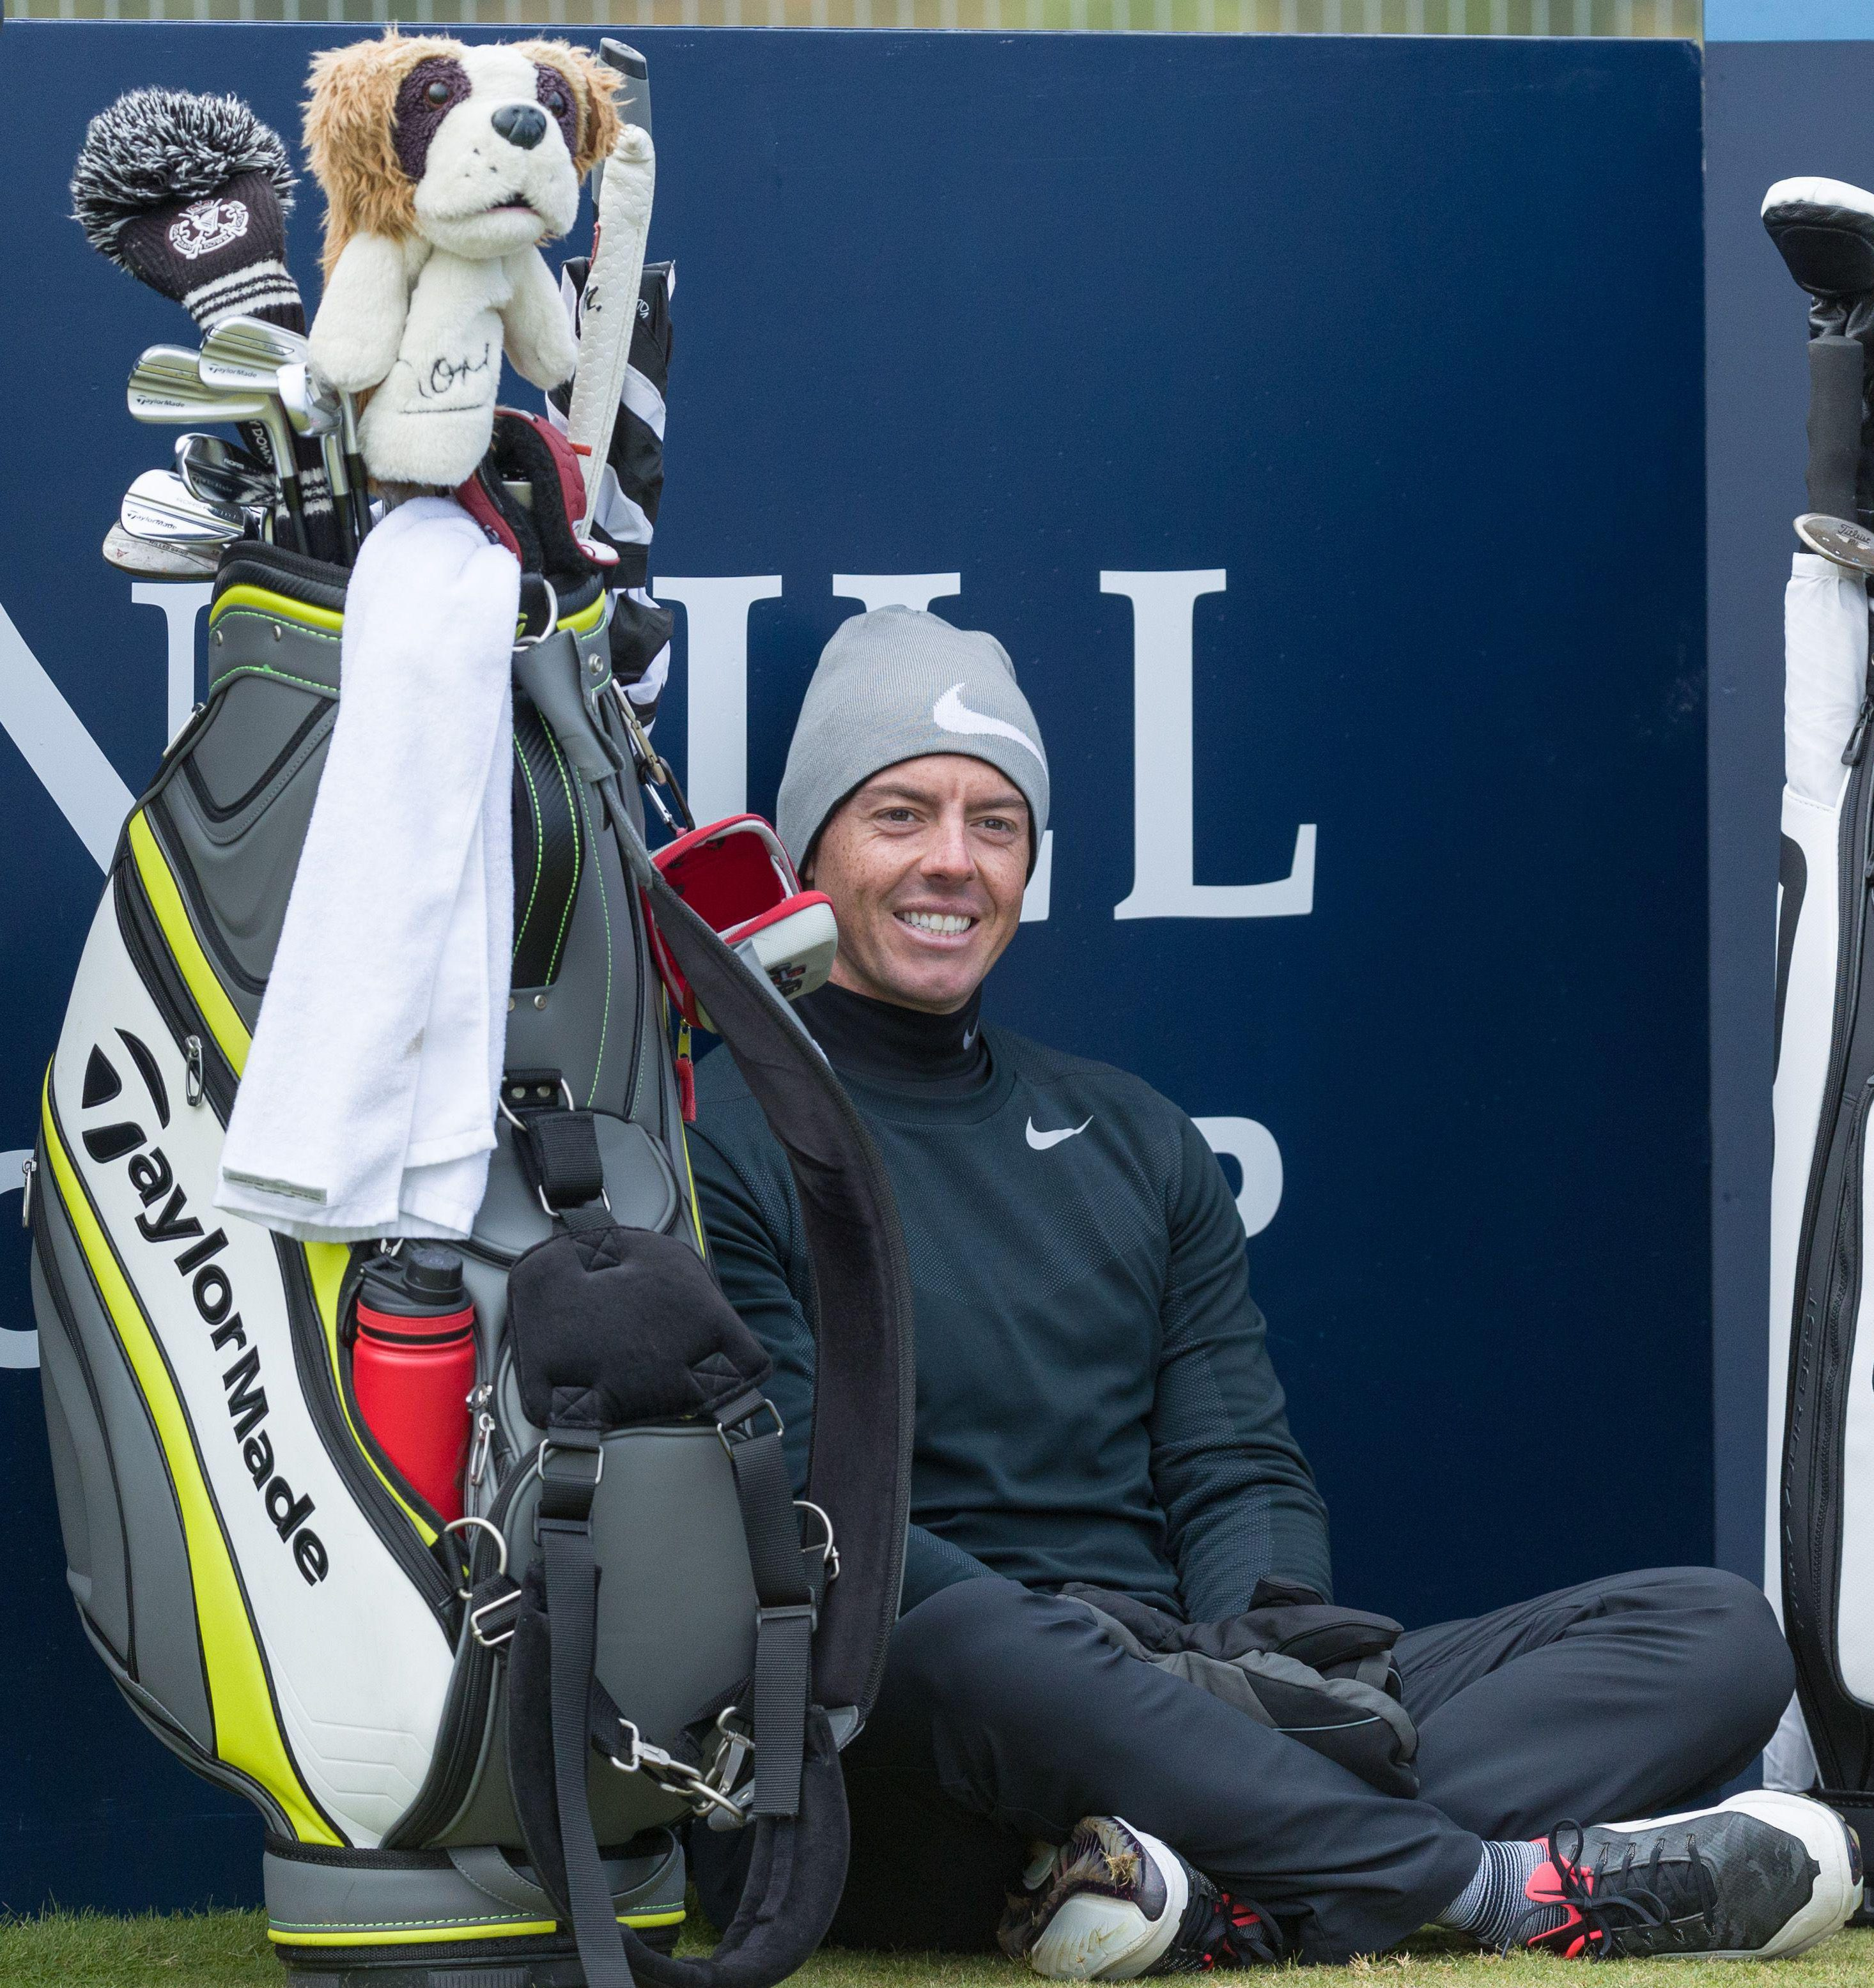 McIlroy takes a break as he waits to play the 17th hole at St. Andrews